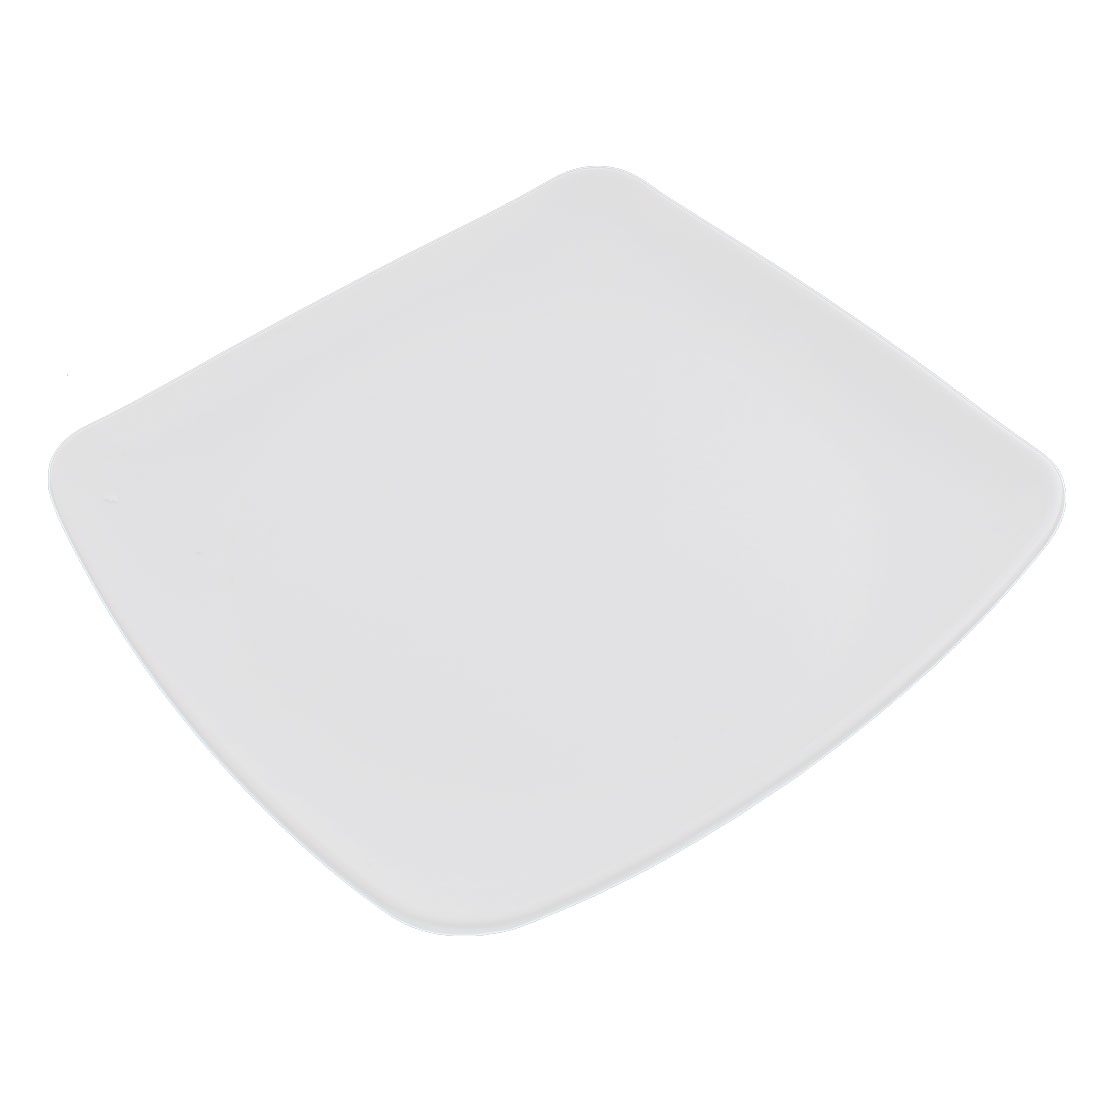 Household Square Shape Food Sushi Fish Plate Dish Container White